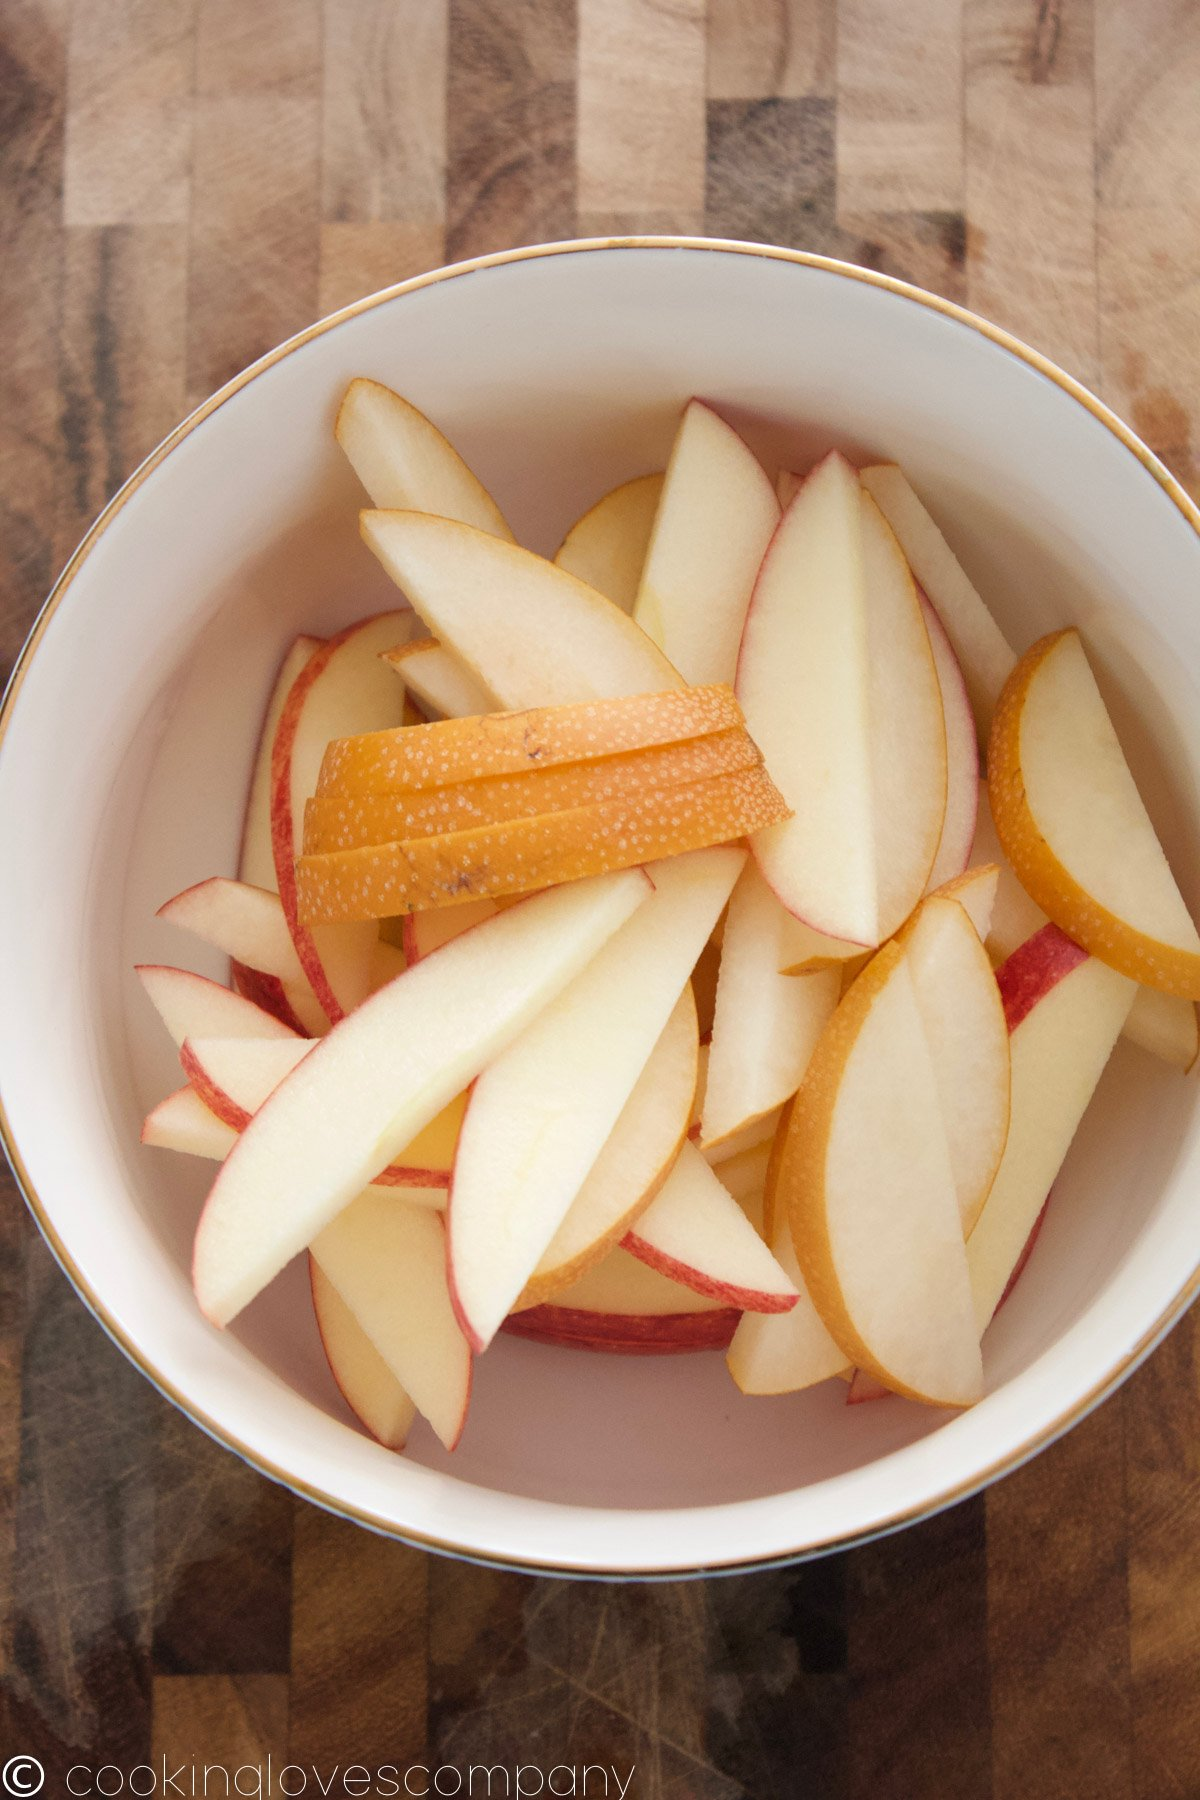 A white bowl with a gold rim on a wooden cutting board filled with sliced apples and pears